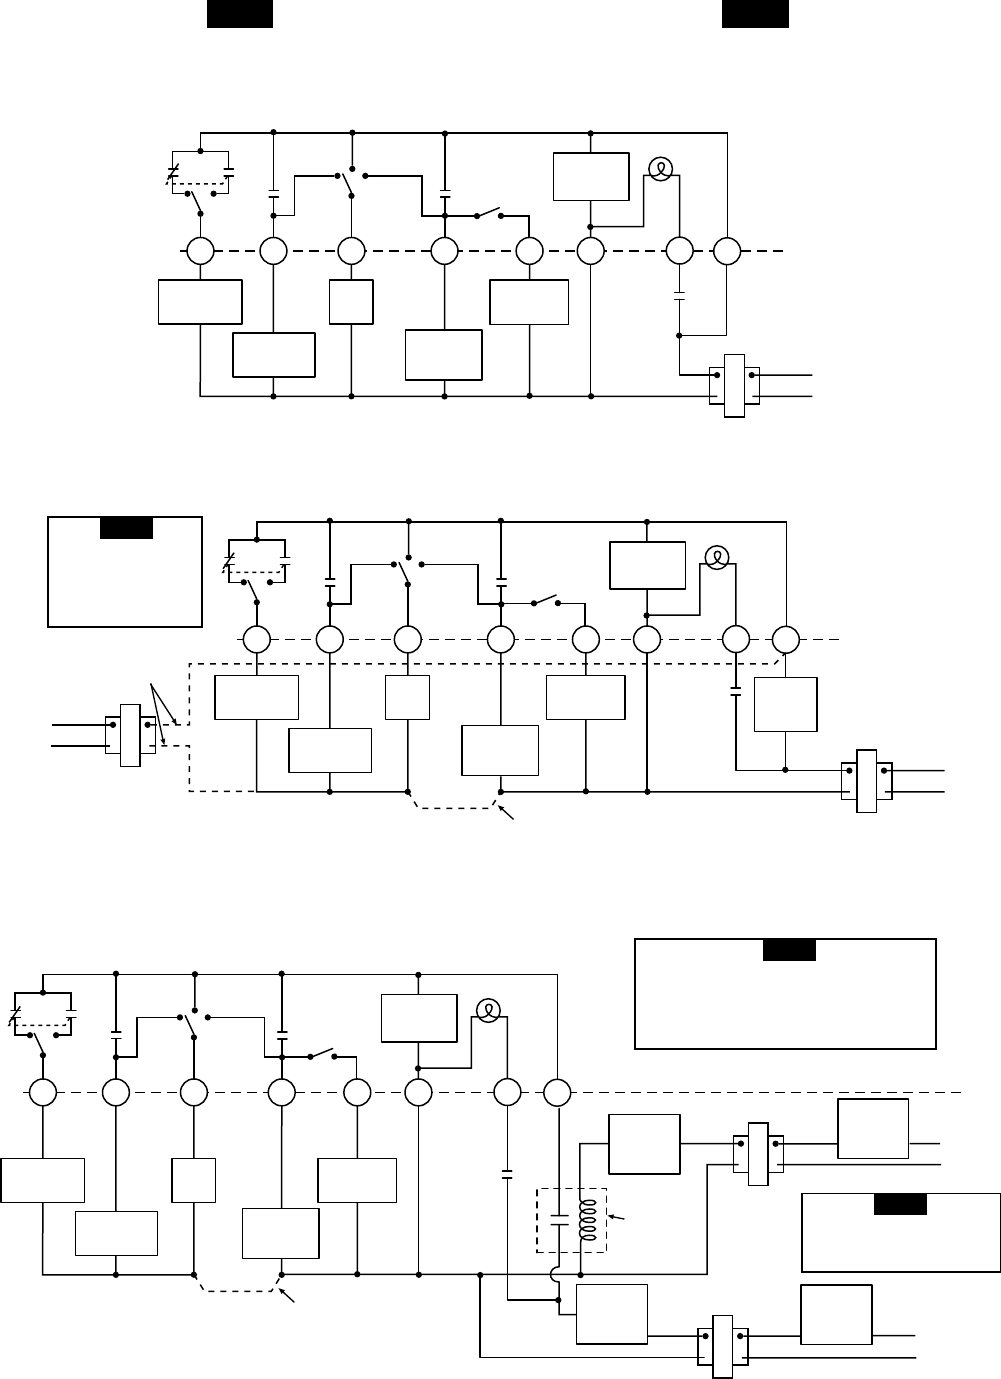 white rodgers type 91 relay wiring diagram white free engine image for user manual